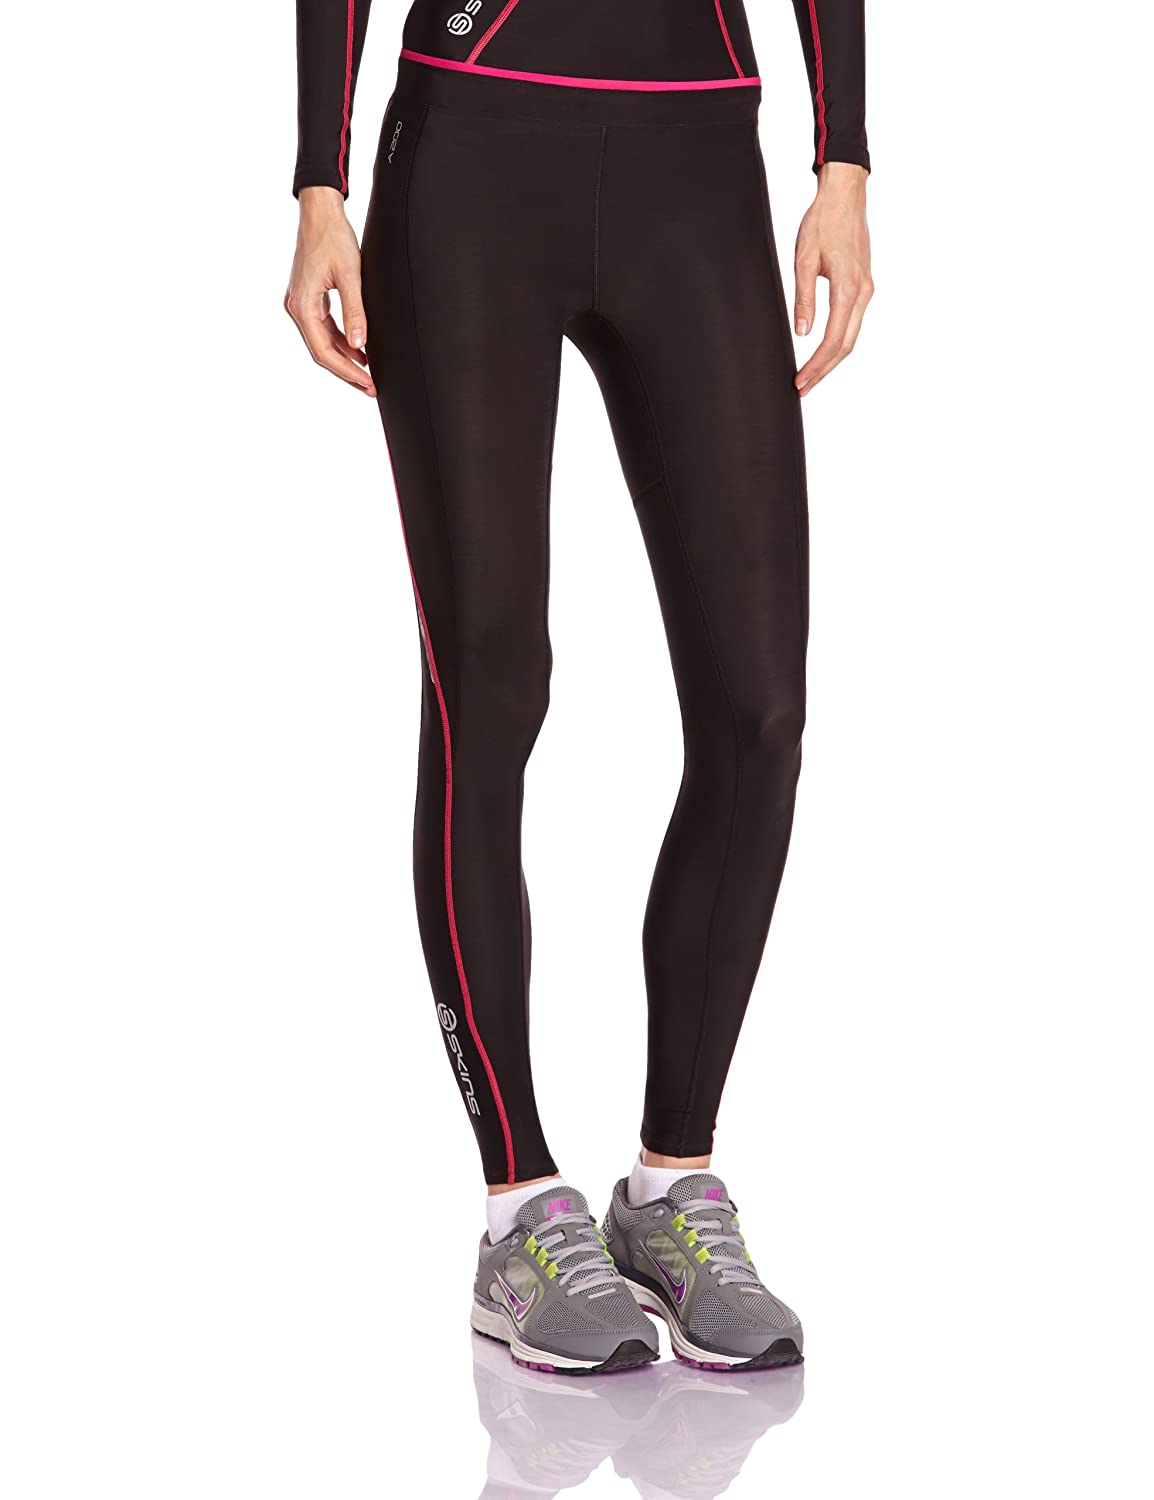 Skins A200 Women's Compression Long Tights Skins North America B61033001FL-P